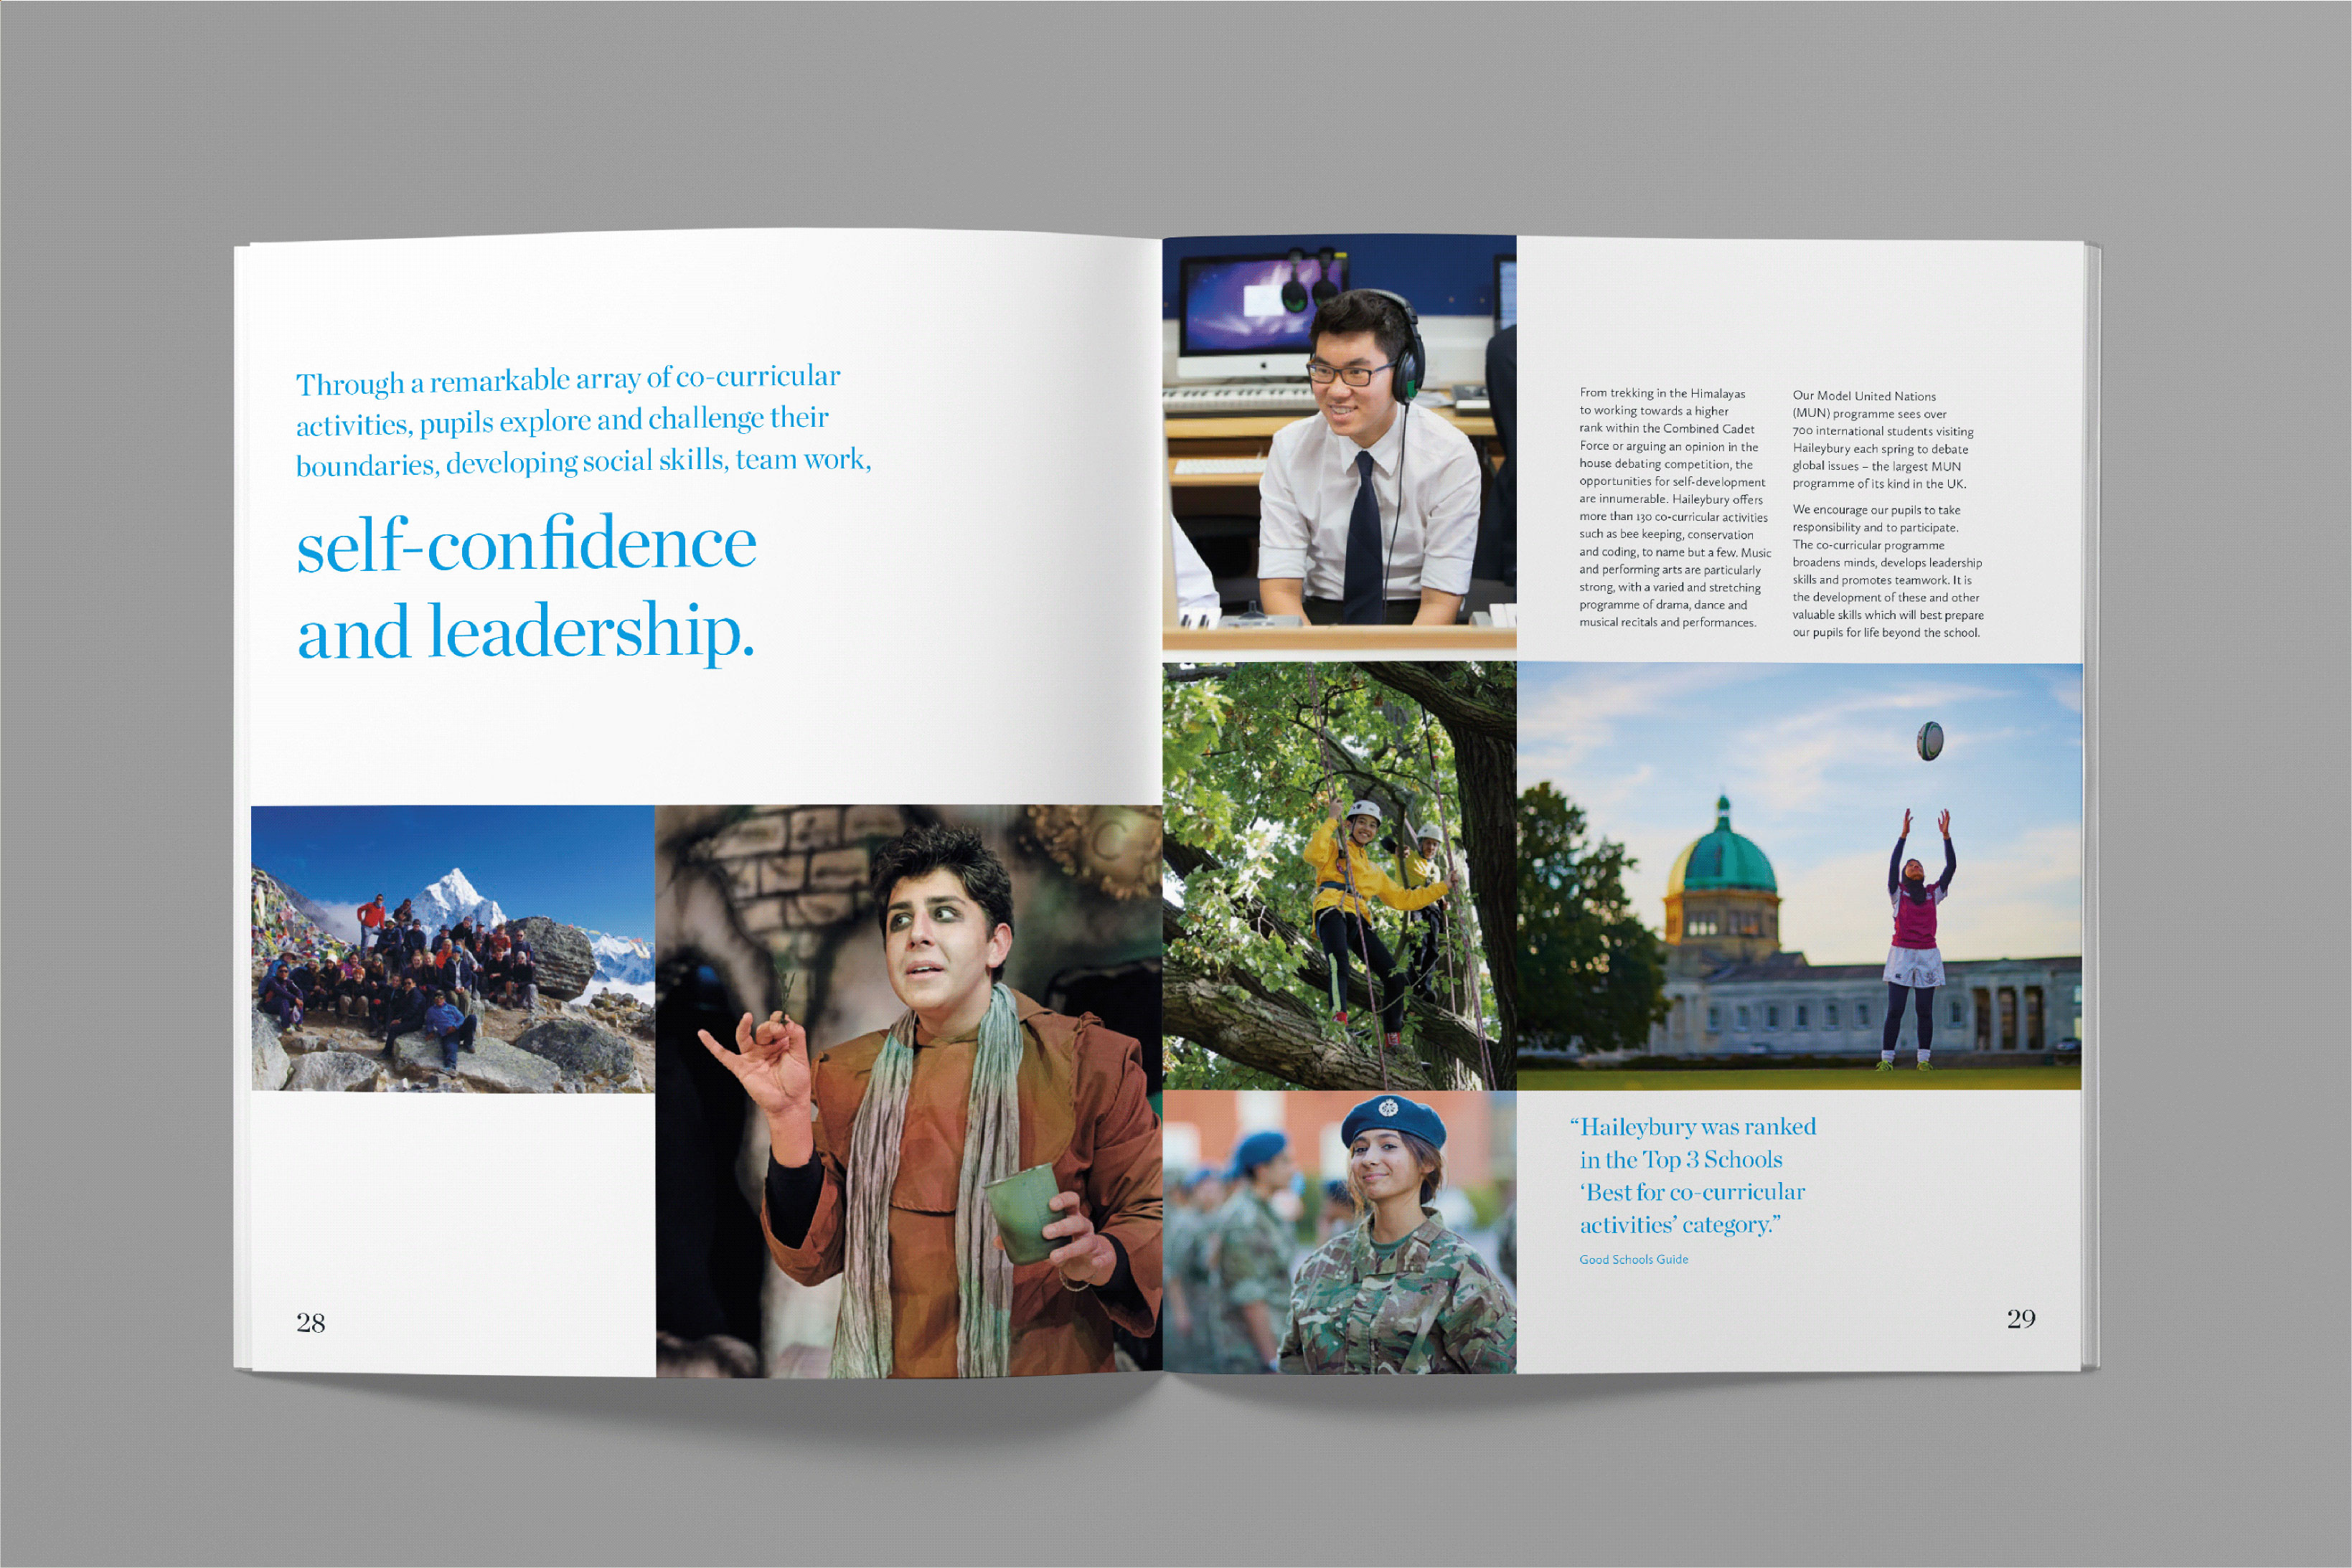 A spread within the Haileybury Prospectus